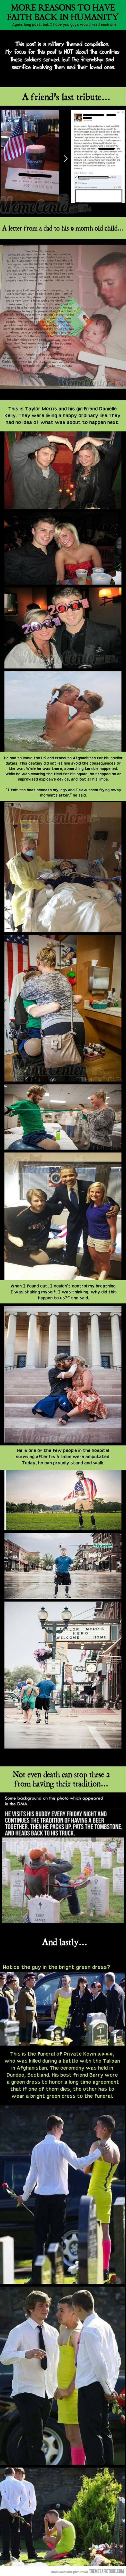 More reasons to have faith in humanity…